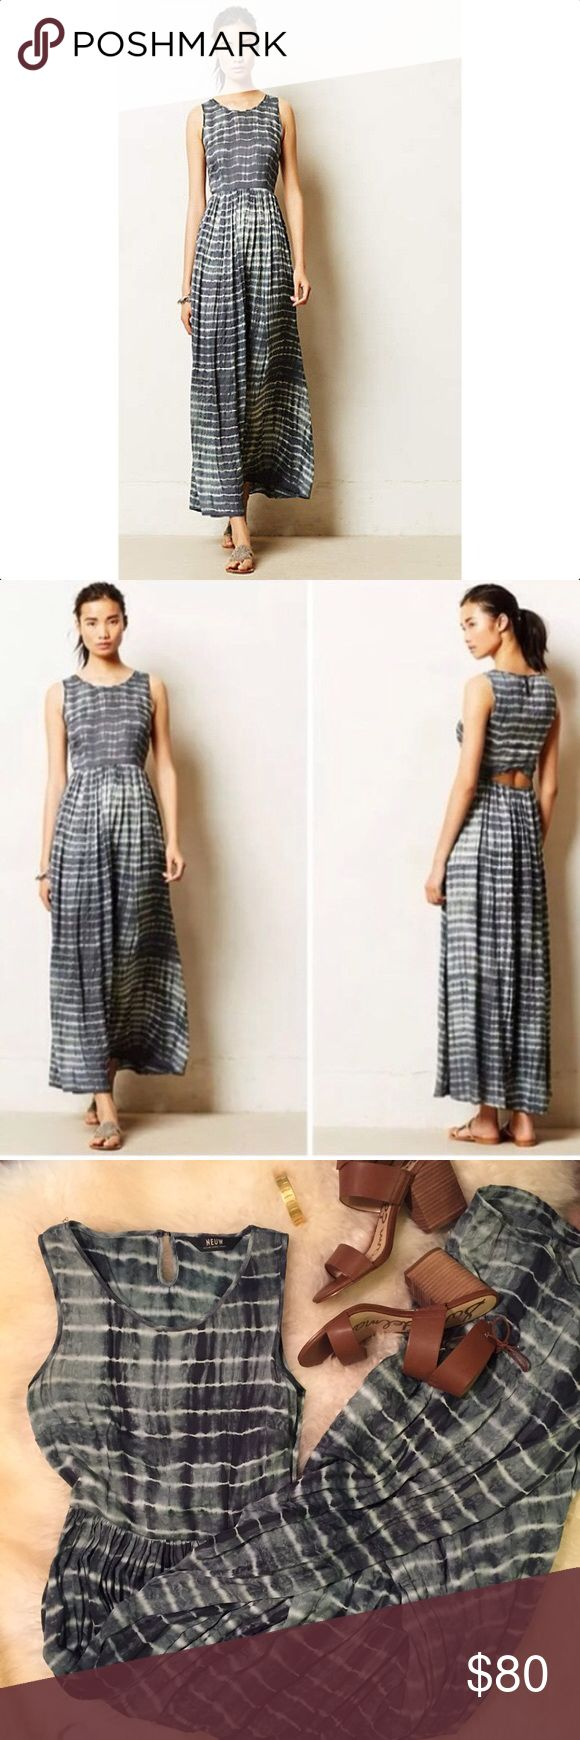 Anthropologie Shibori Maxi Dress by Neuw / Size XS Anthropologie Maxi Dress in a Tie Dye print with super cute back detail. Anthropologie brand is Neuw. Excellent condition, worn once Anthropologie Dresses Maxi